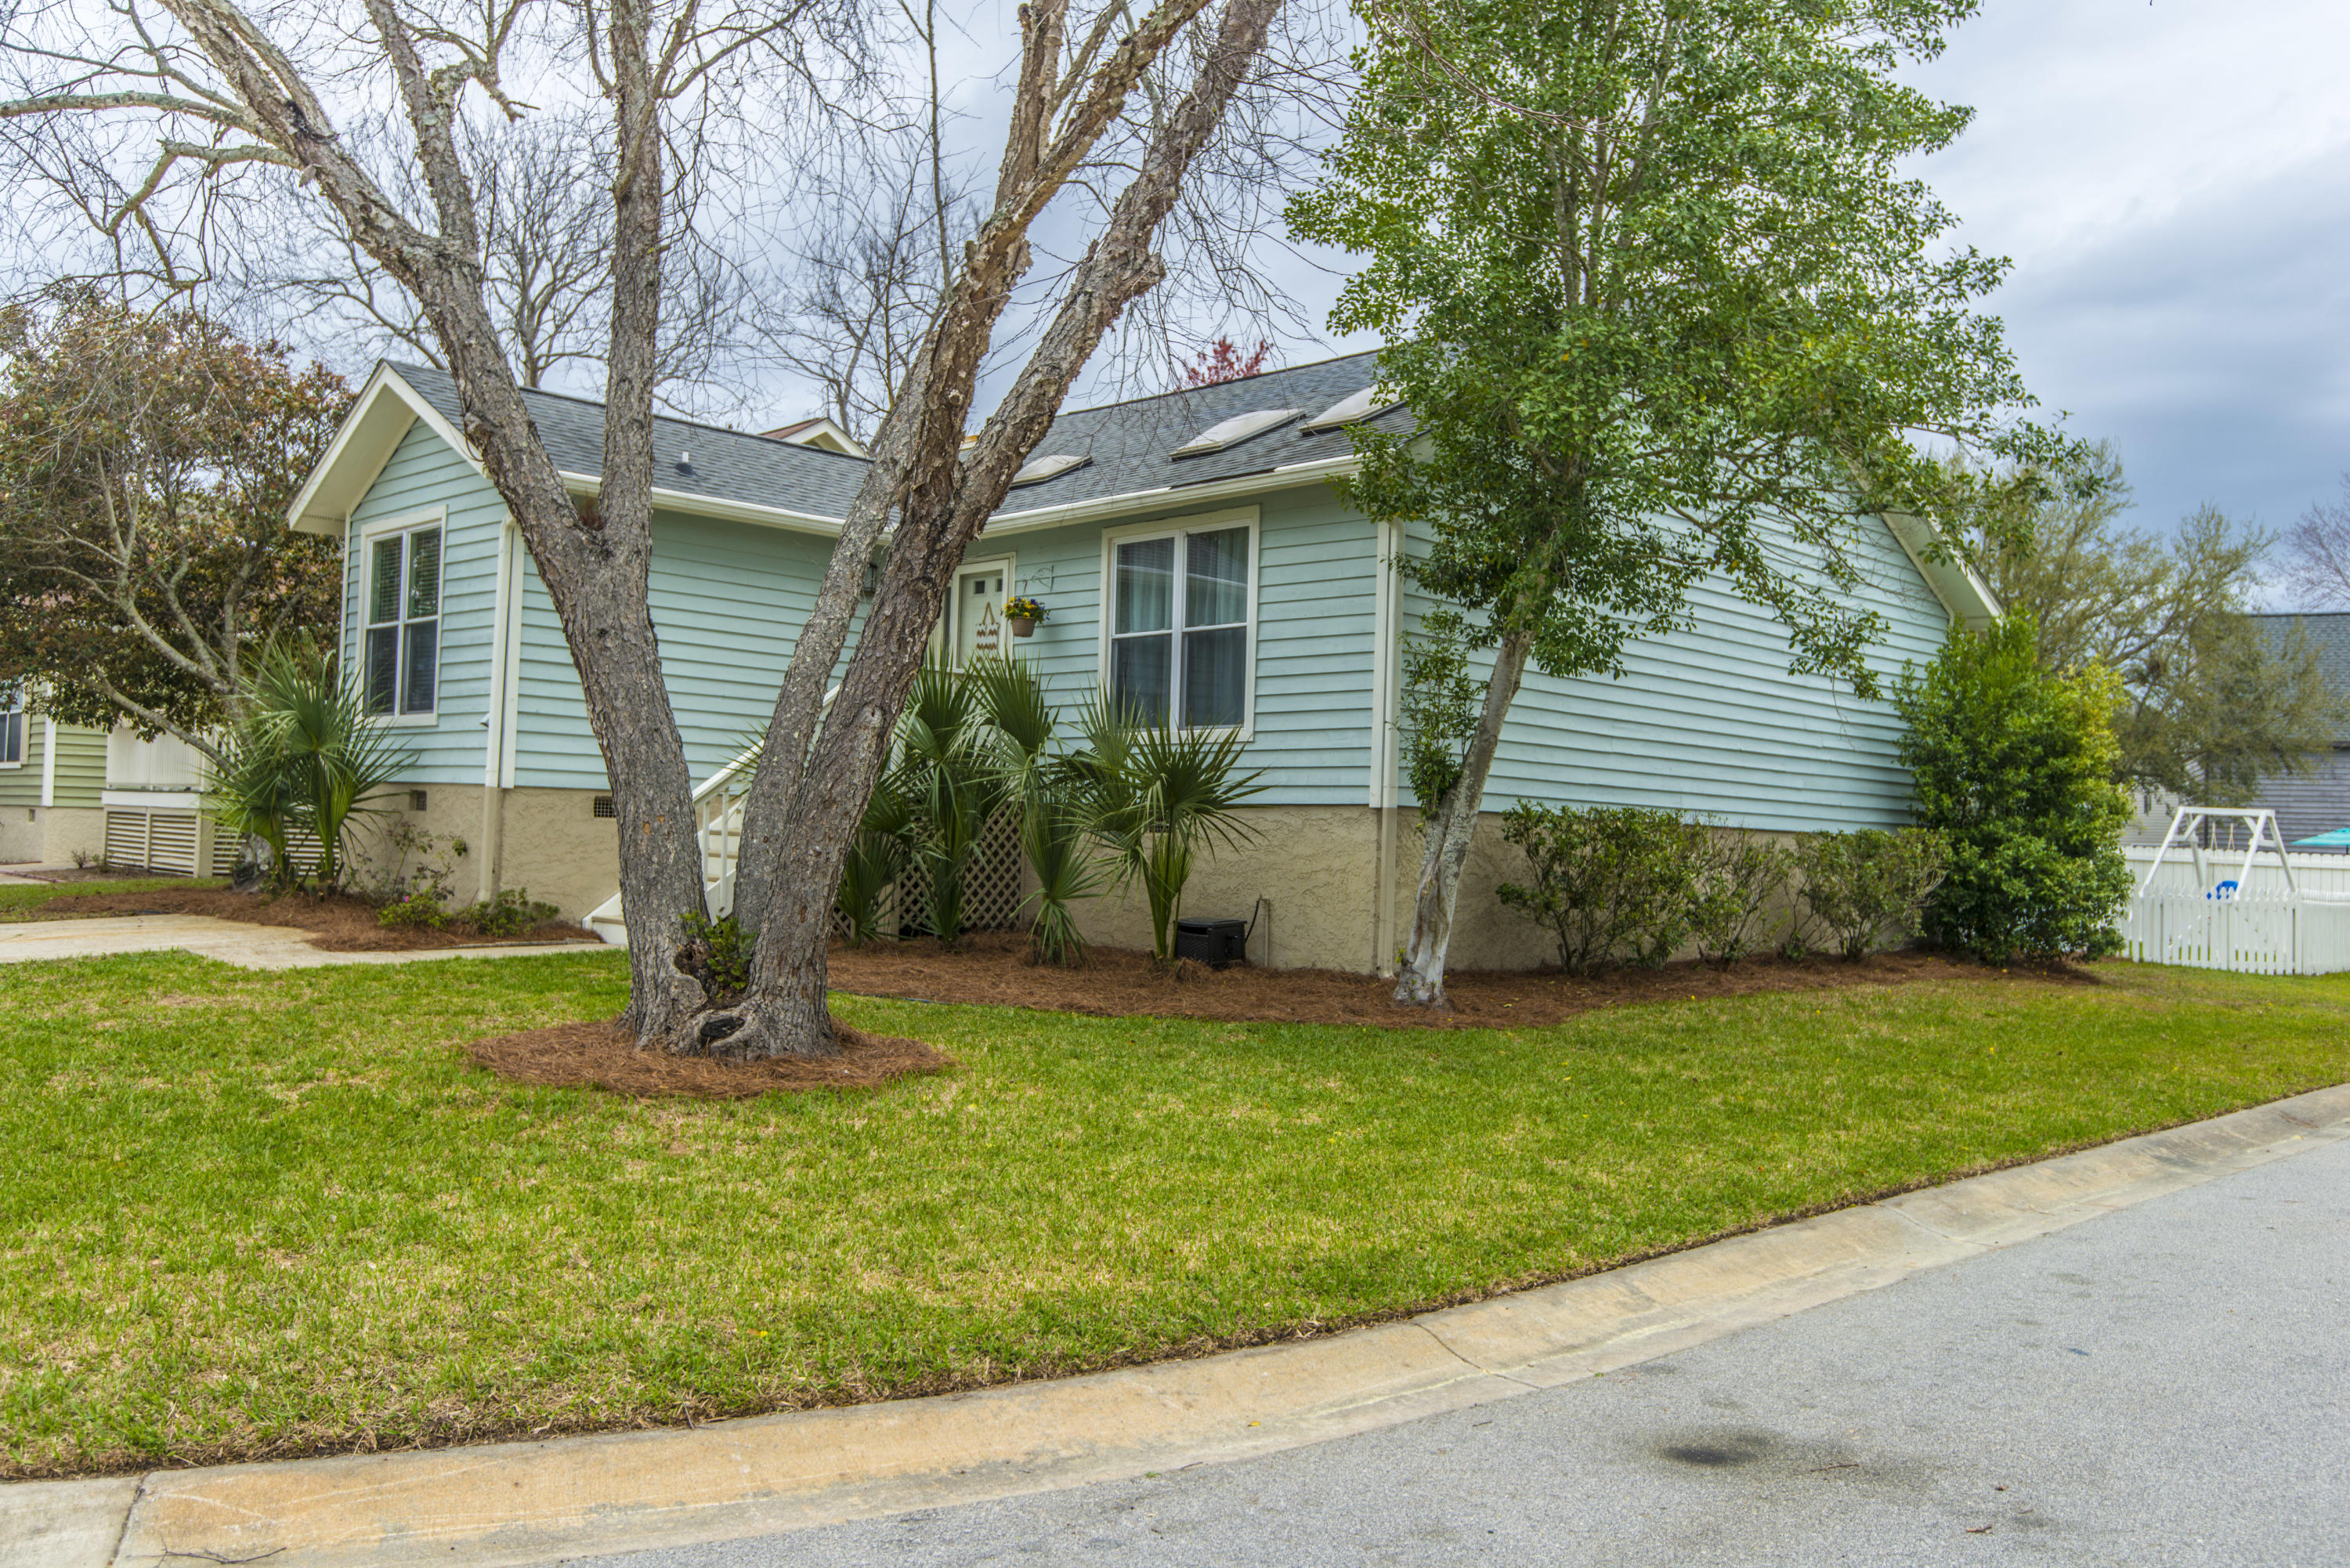 Pirates Cove Homes For Sale - 1530 Privateer, Mount Pleasant, SC - 29